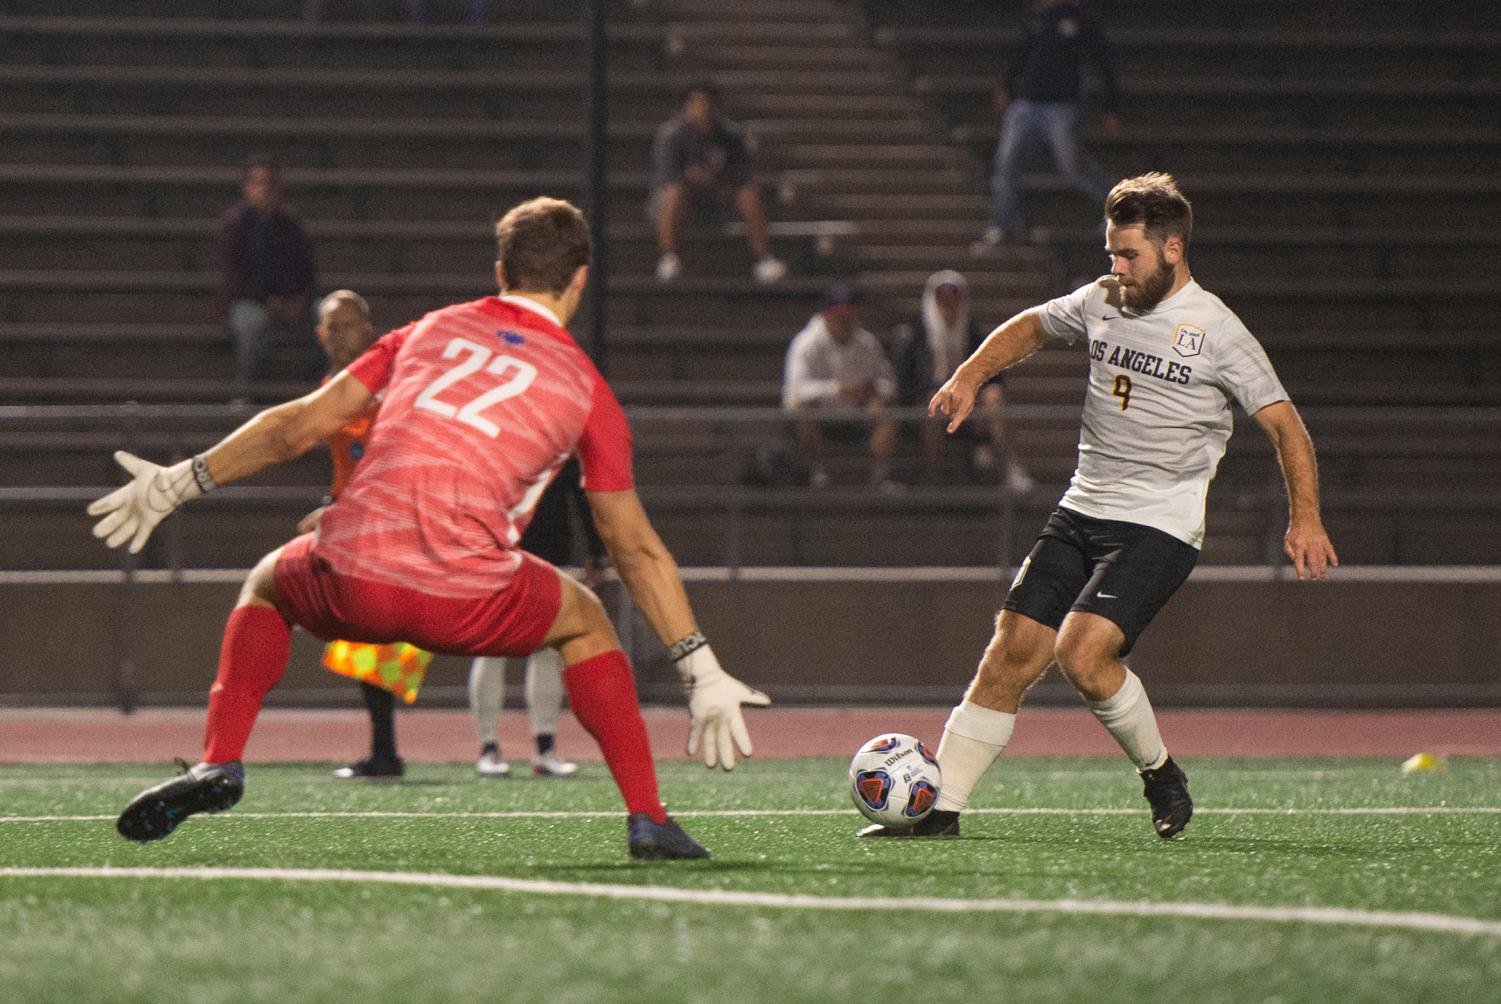 Robin Lindahl (9) defends the ball against his opponent.